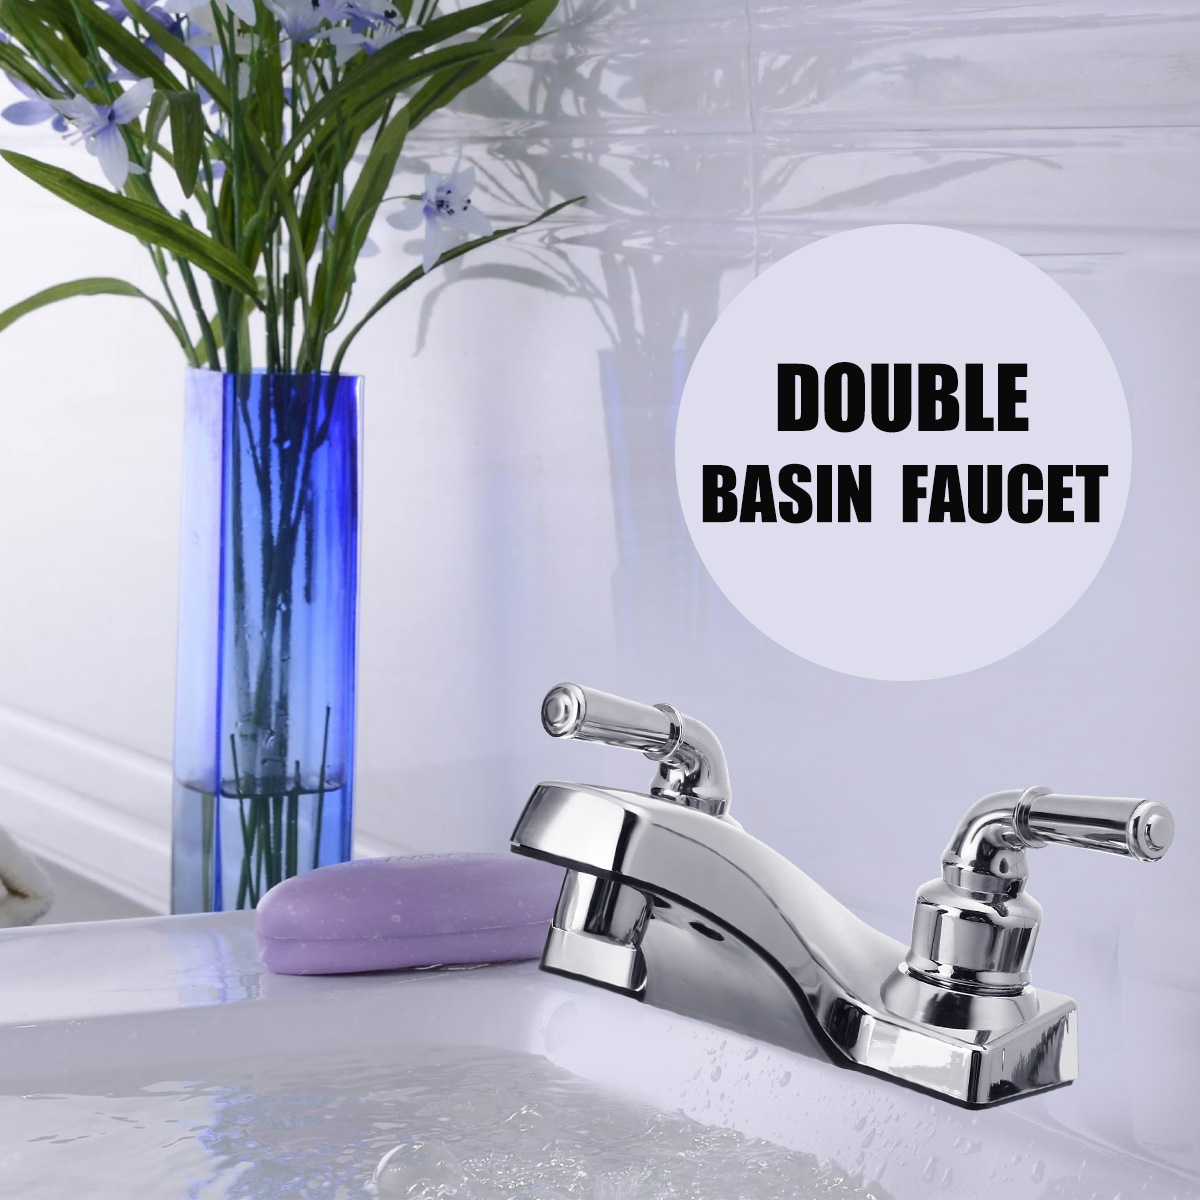 Xueqin PP Double Handle Basin Faucet Bathroom Basin Sink Faucet Double Hole Mixer Tap Cold And Hot Deck Mount For BathroomXueqin PP Double Handle Basin Faucet Bathroom Basin Sink Faucet Double Hole Mixer Tap Cold And Hot Deck Mount For Bathroom